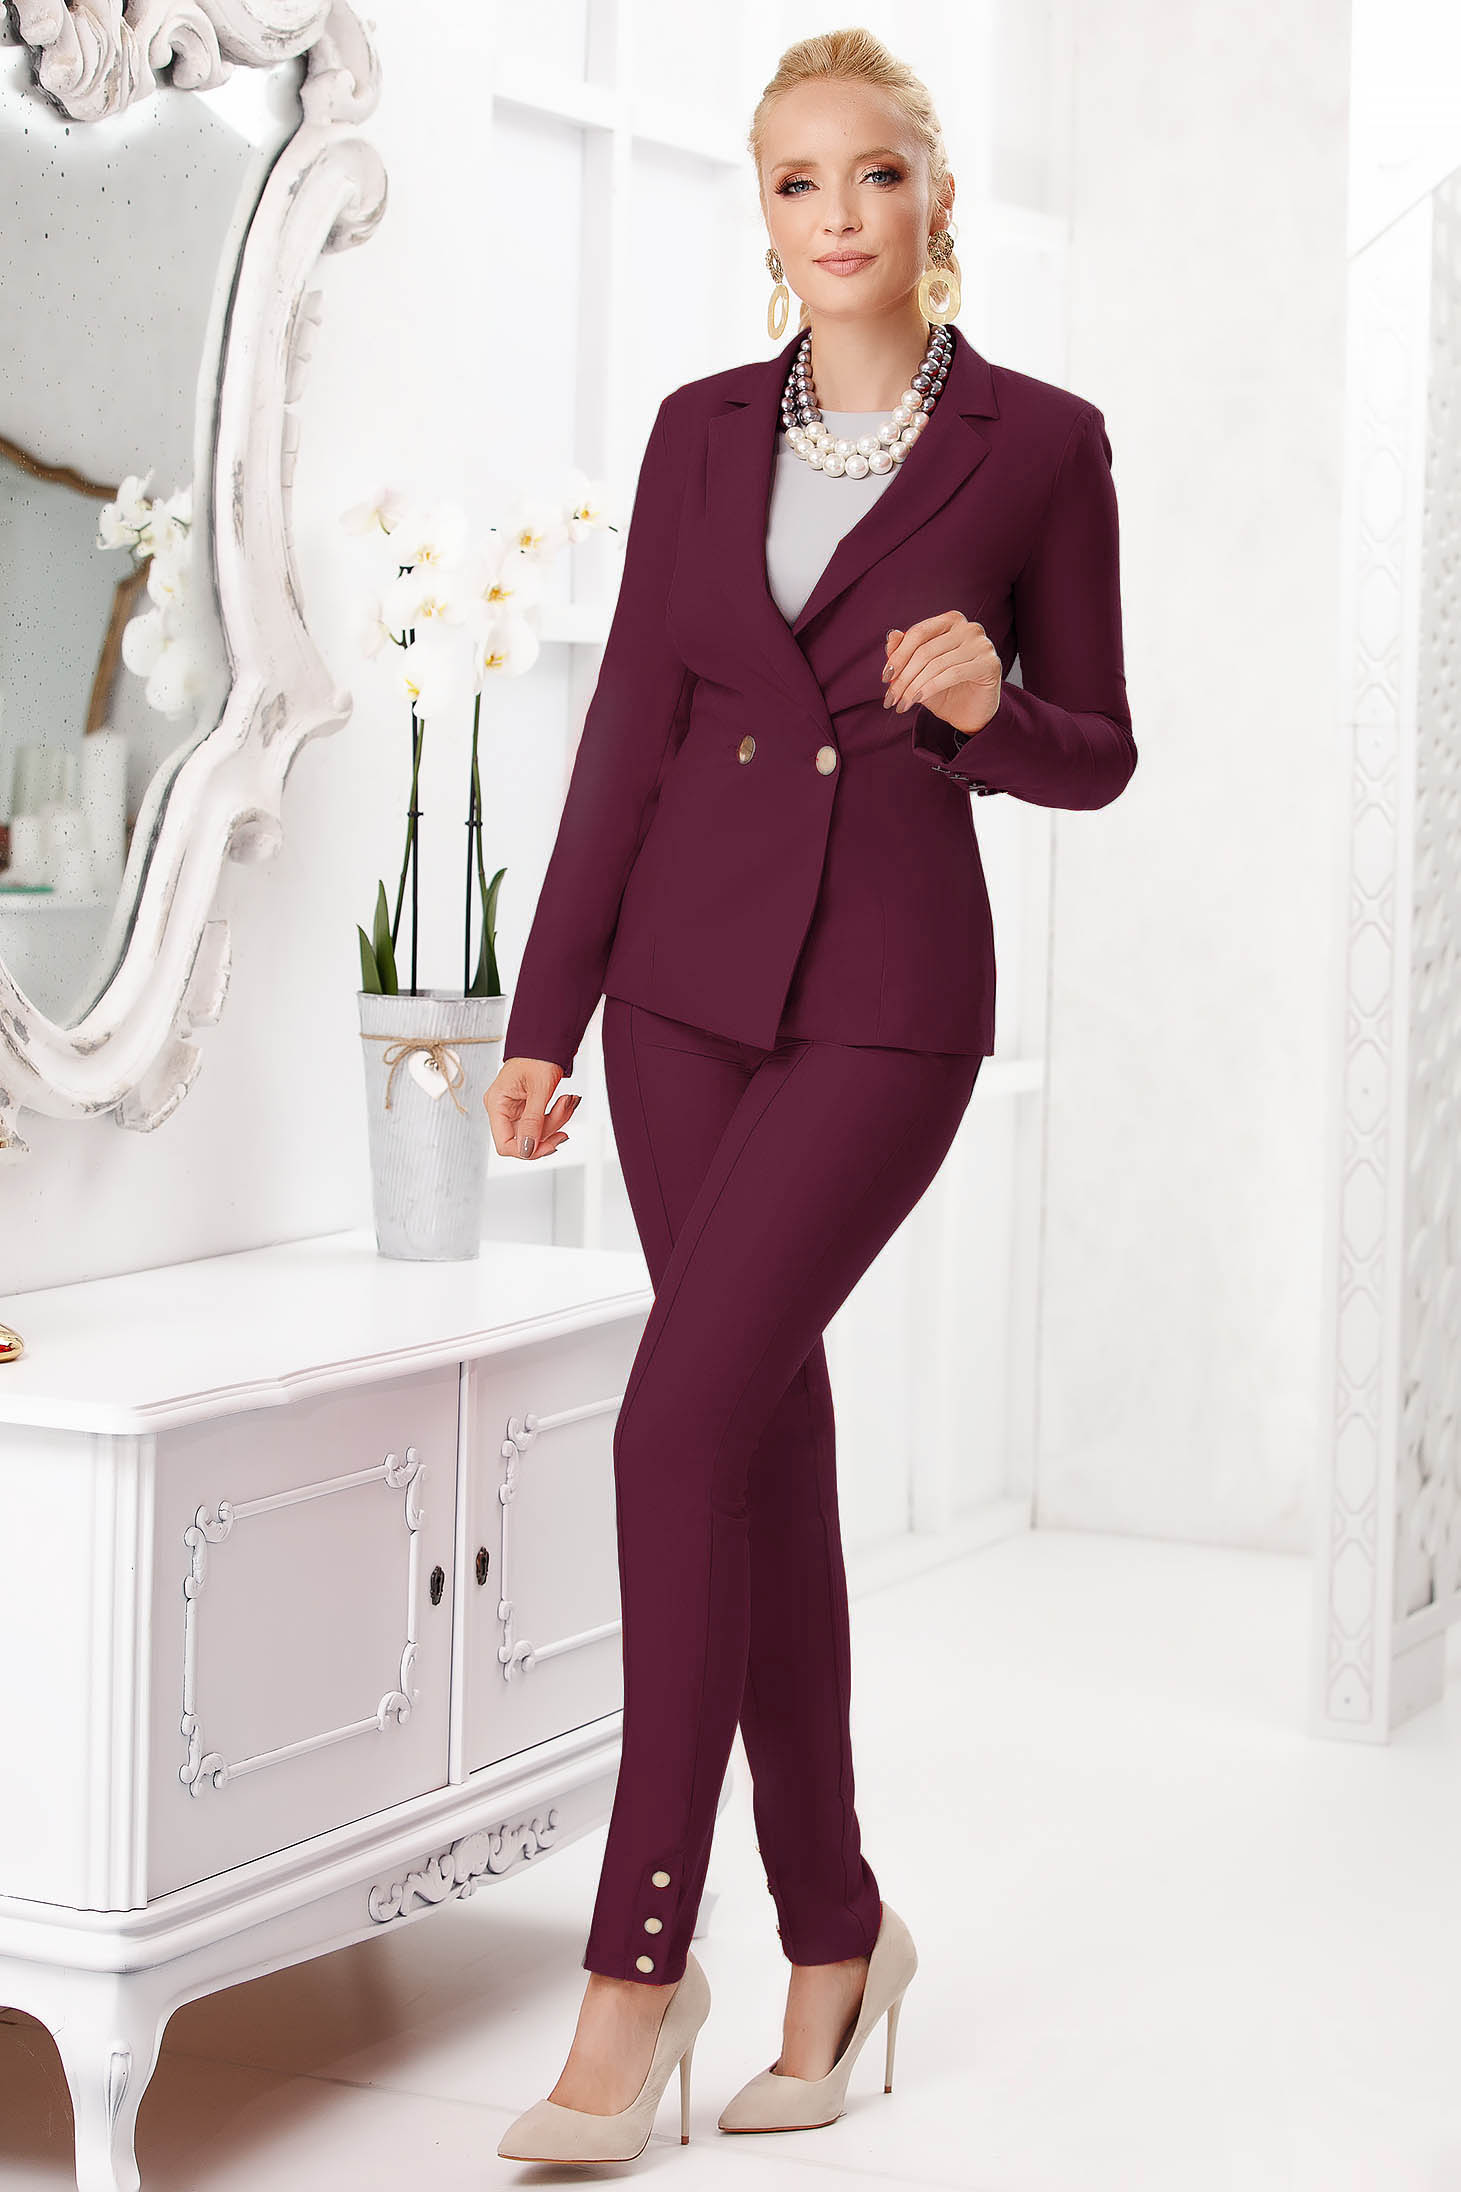 Burgundy trousers elegant long conical with pockets with button accessories cloth thin fabric